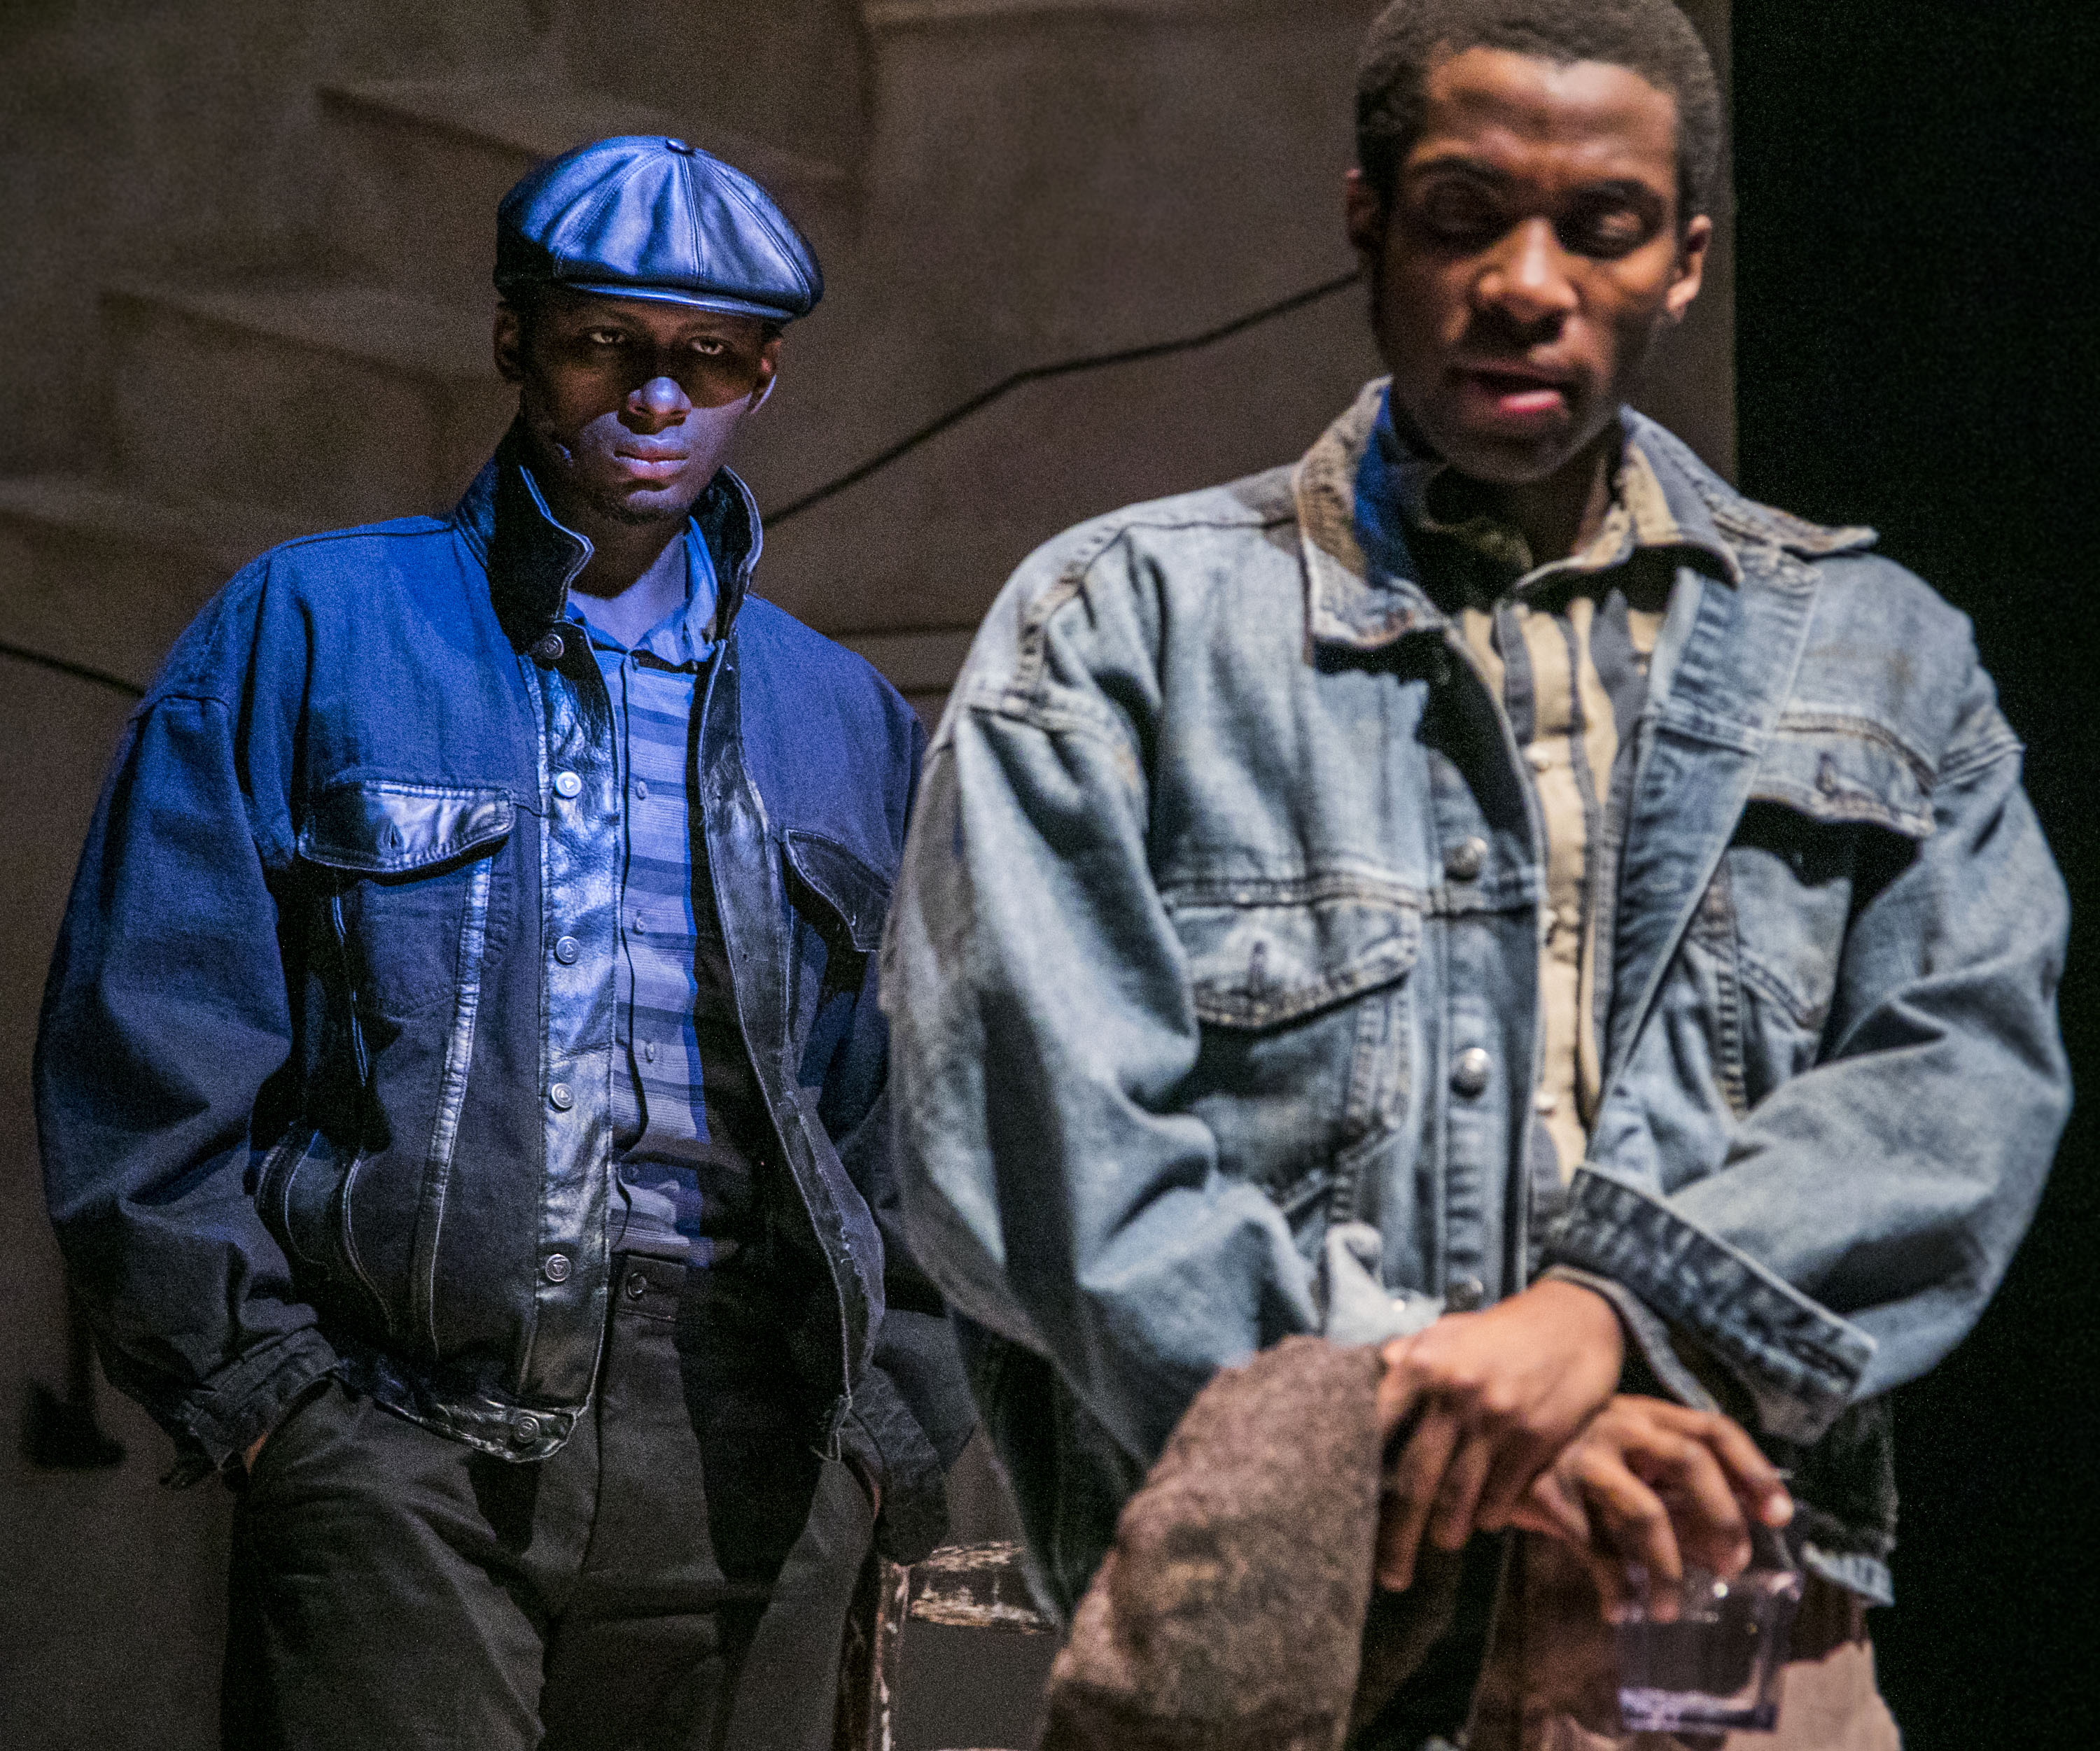 "Bigger Thomas (Matthew James Elam), right, battles his ever present inner demon, Black Rat (Michael Morrow) in a scene from The Theatre School's production of ""Native Son,"" currently playing on the Fullerton Stage Feb. 9-18, 2018. Set in South Side Chicago in the 1930s, Bigger Thomas lands a job with a wealthy white family, but his fate is sealed when a violent act unleashes a chain of events that cannot be undone. The play, based on the novel by Richard Wright, is directed by DePaul graduate student Mikael Burke, and explores the systemic racism and poverty that oppressed Bigger Thomas from birth. (DePaul University/Jamie Moncrief)"